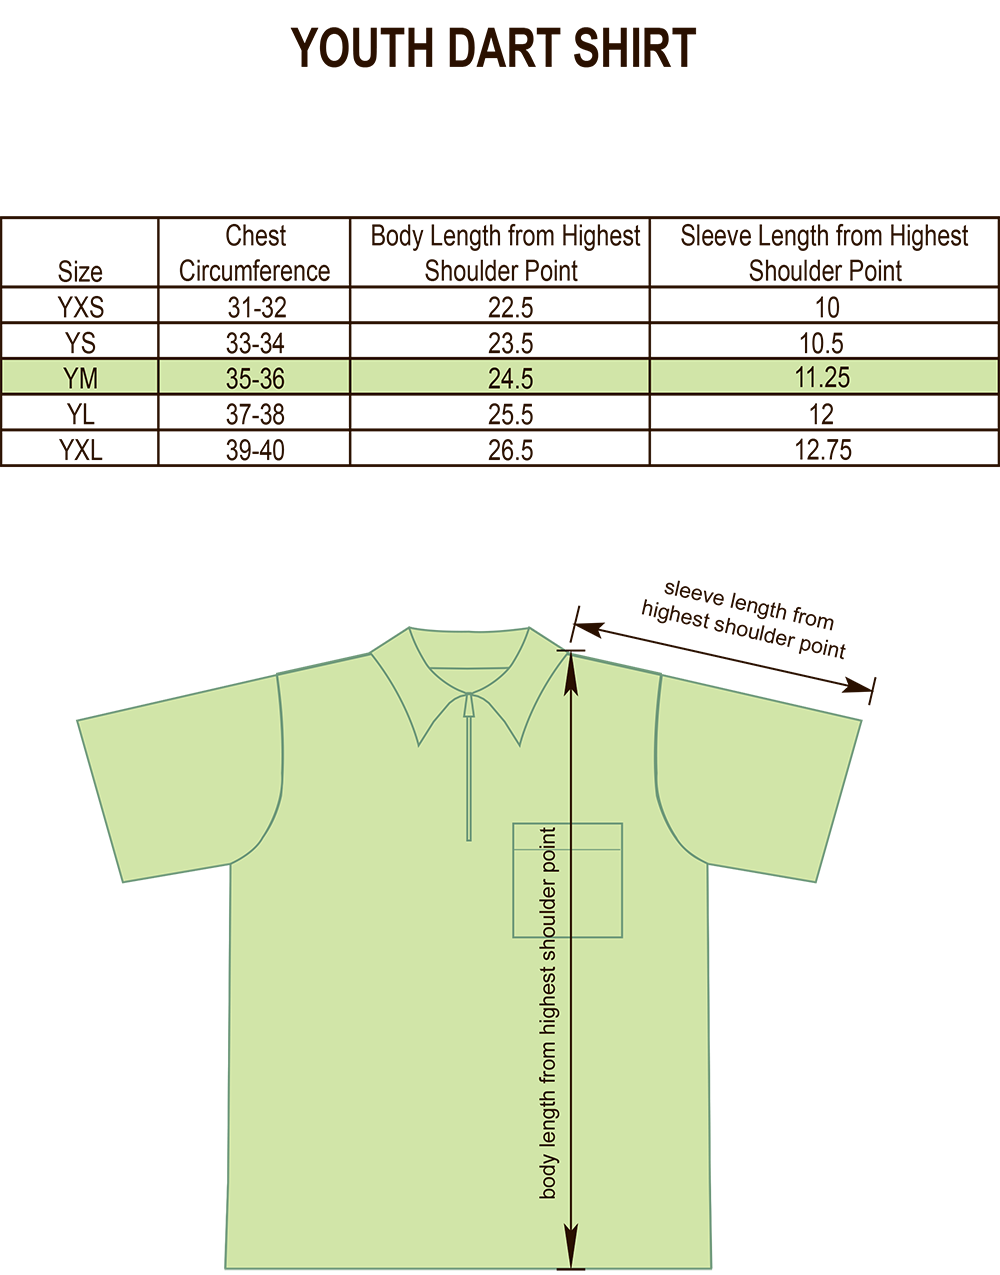 Youth Darts, Bowling and Billiards Shirt Size Chart Image